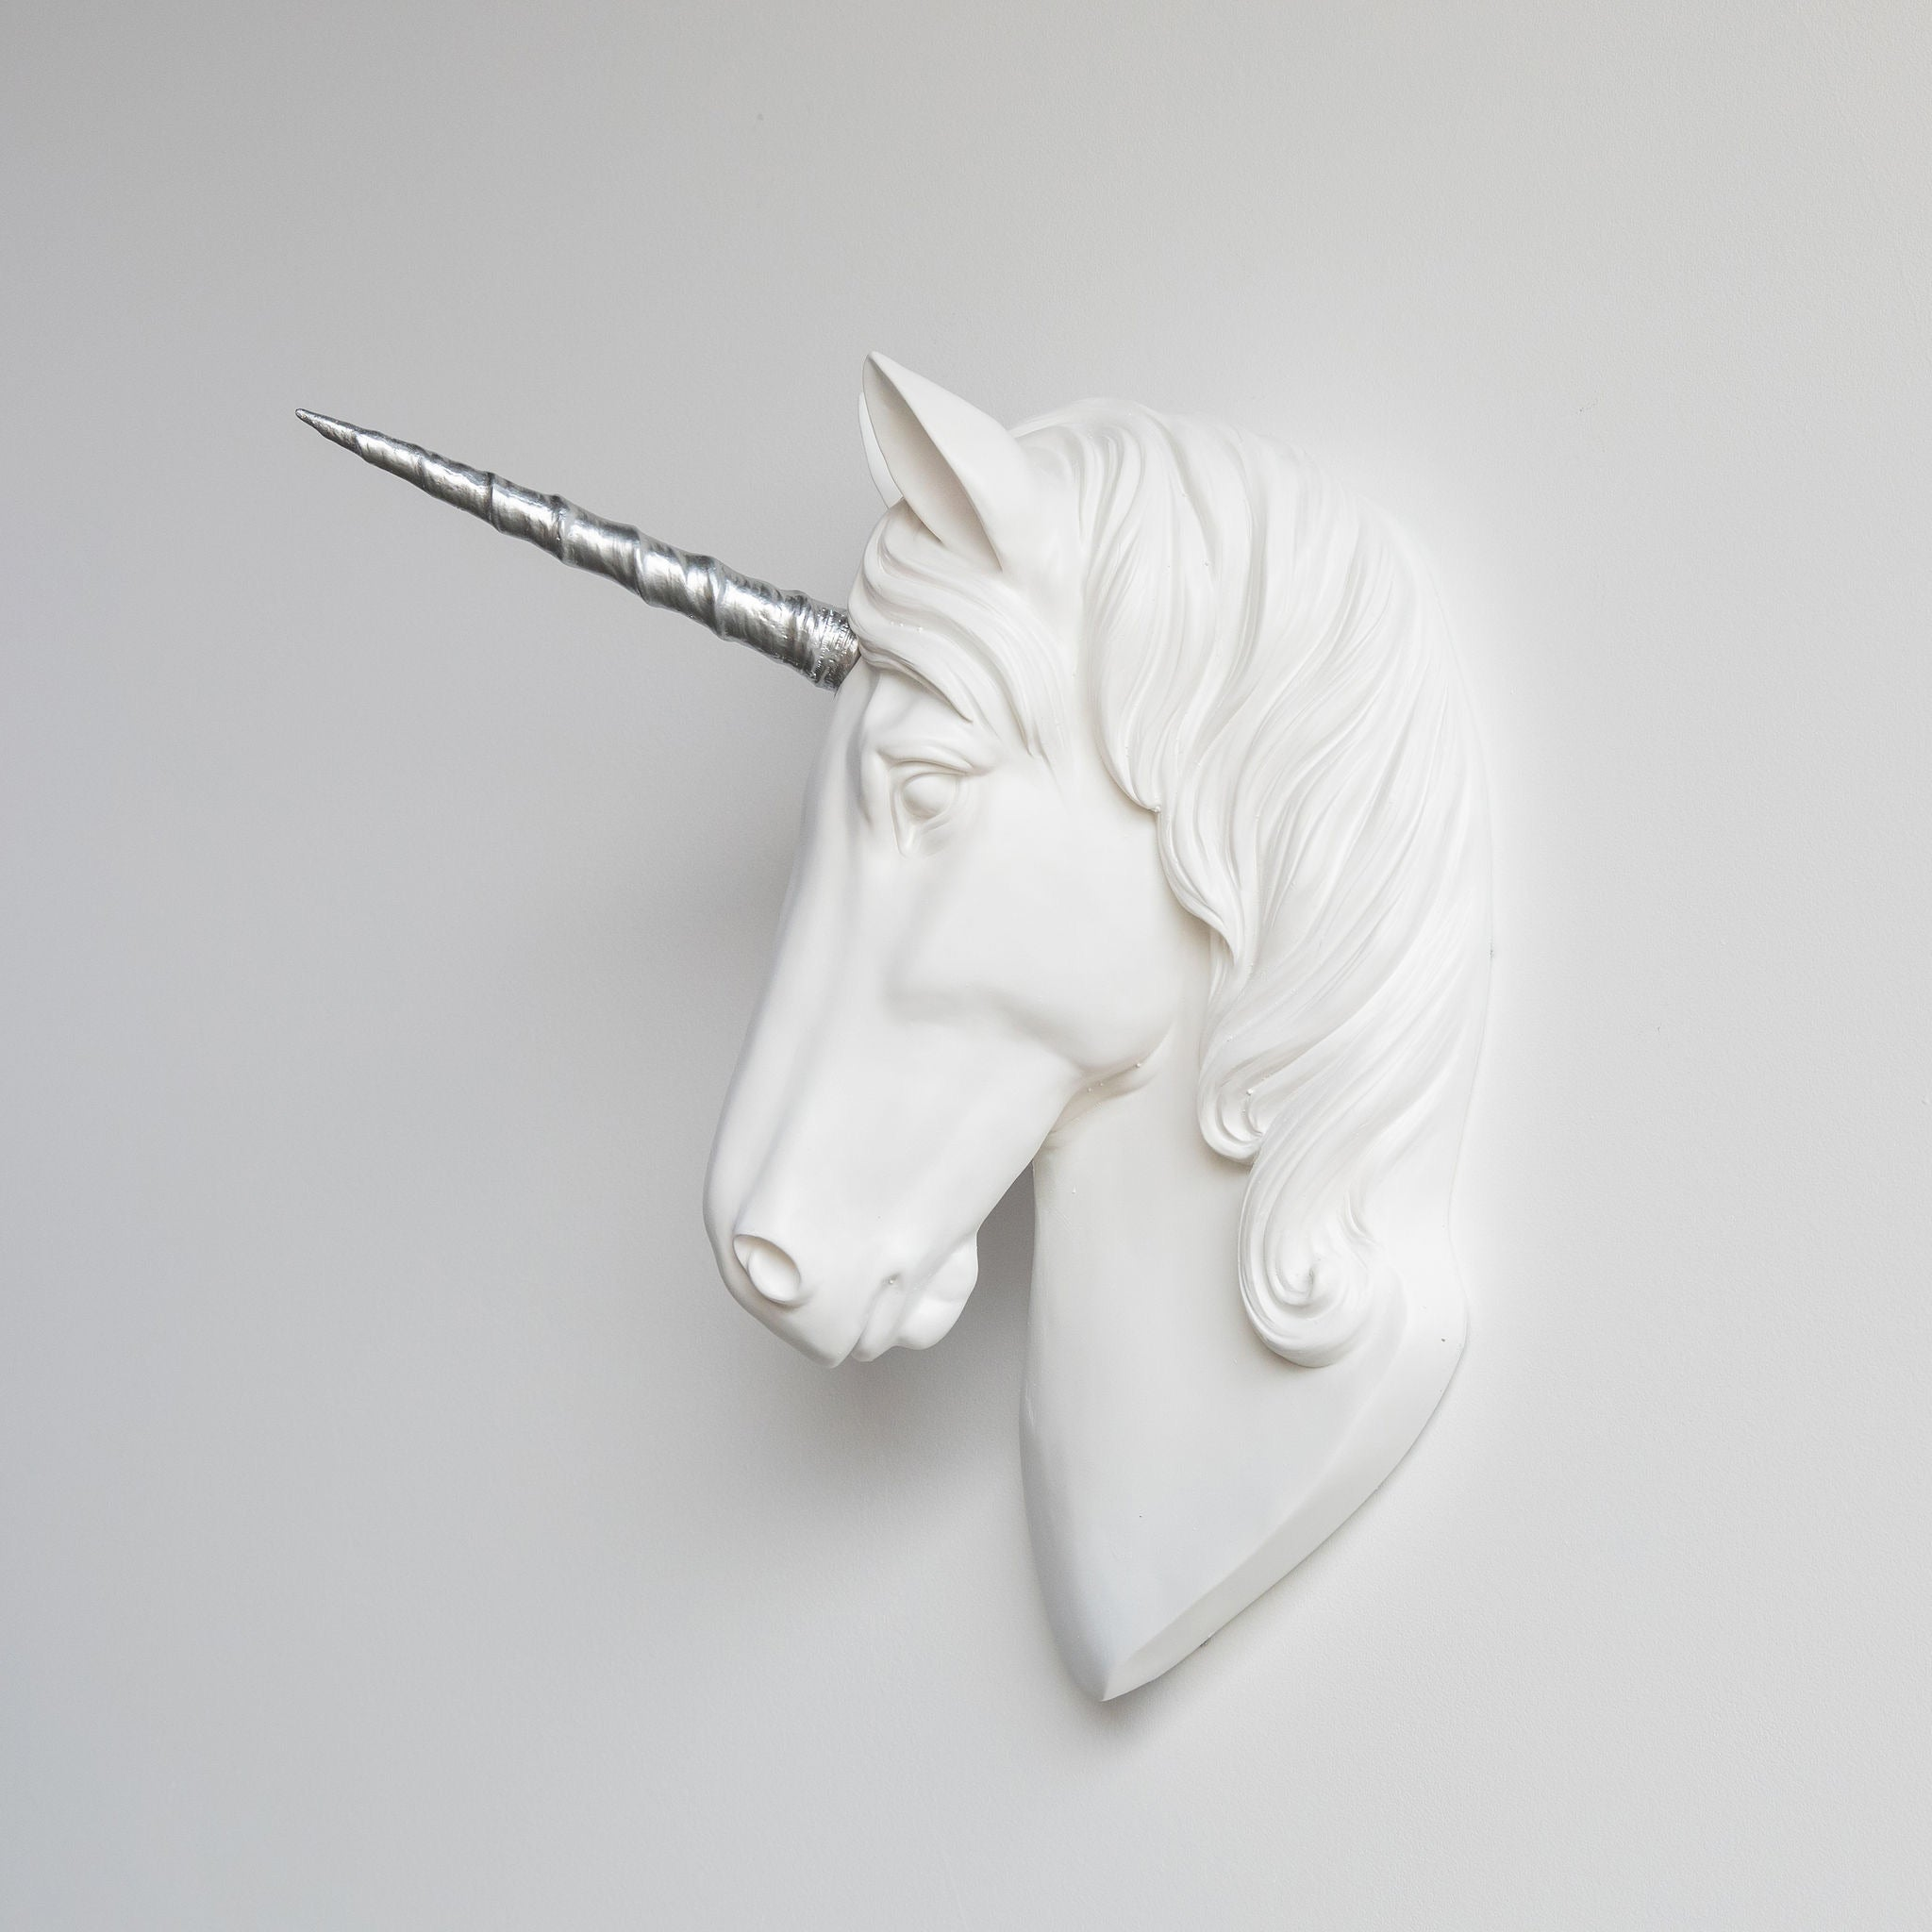 Faux Unicorn Wall Plaque // White and Silver